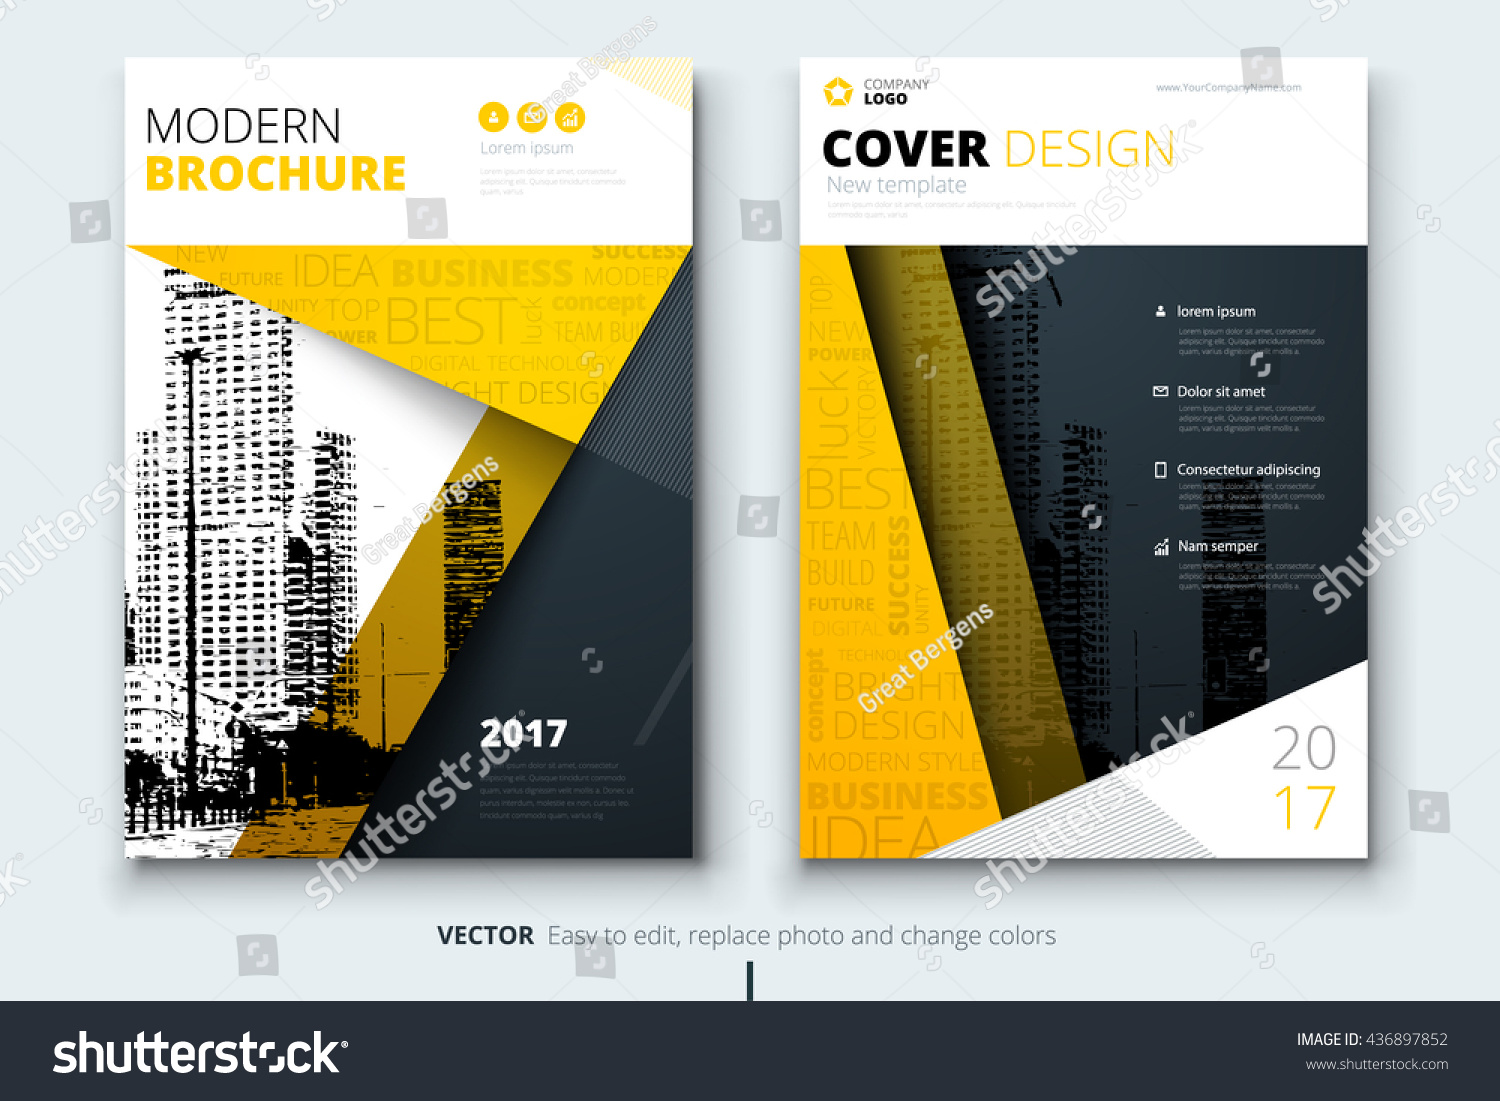 Yellow cover design brochure creative poster imagem for Brochure cover designs